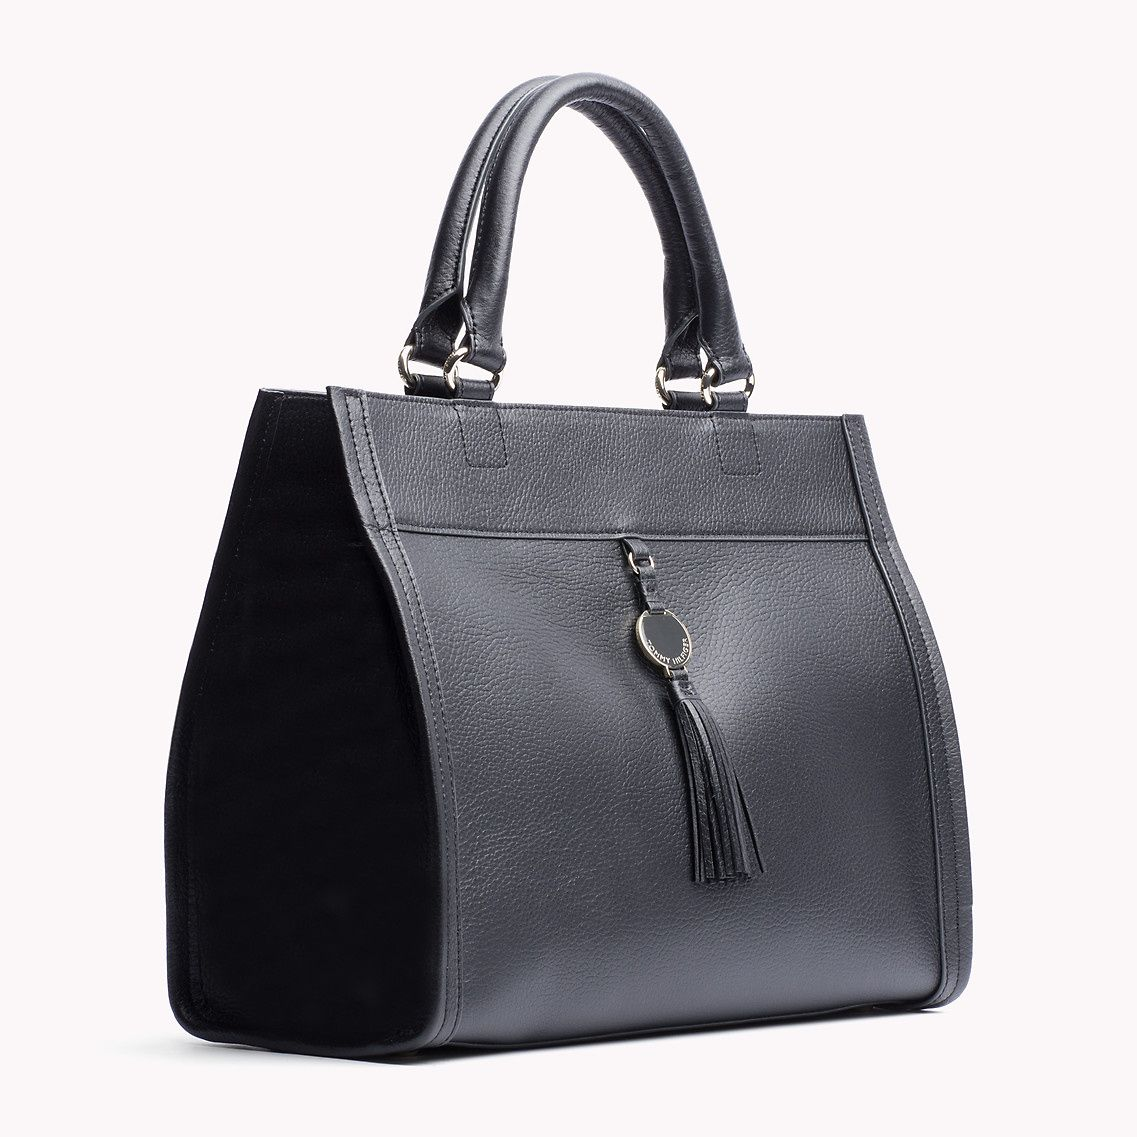 b0f0062f Tommy Hilfiger Clara Tote Bag. Elegant tote crafted from pebbled leather  with contrasting, topstitched seams throughout.